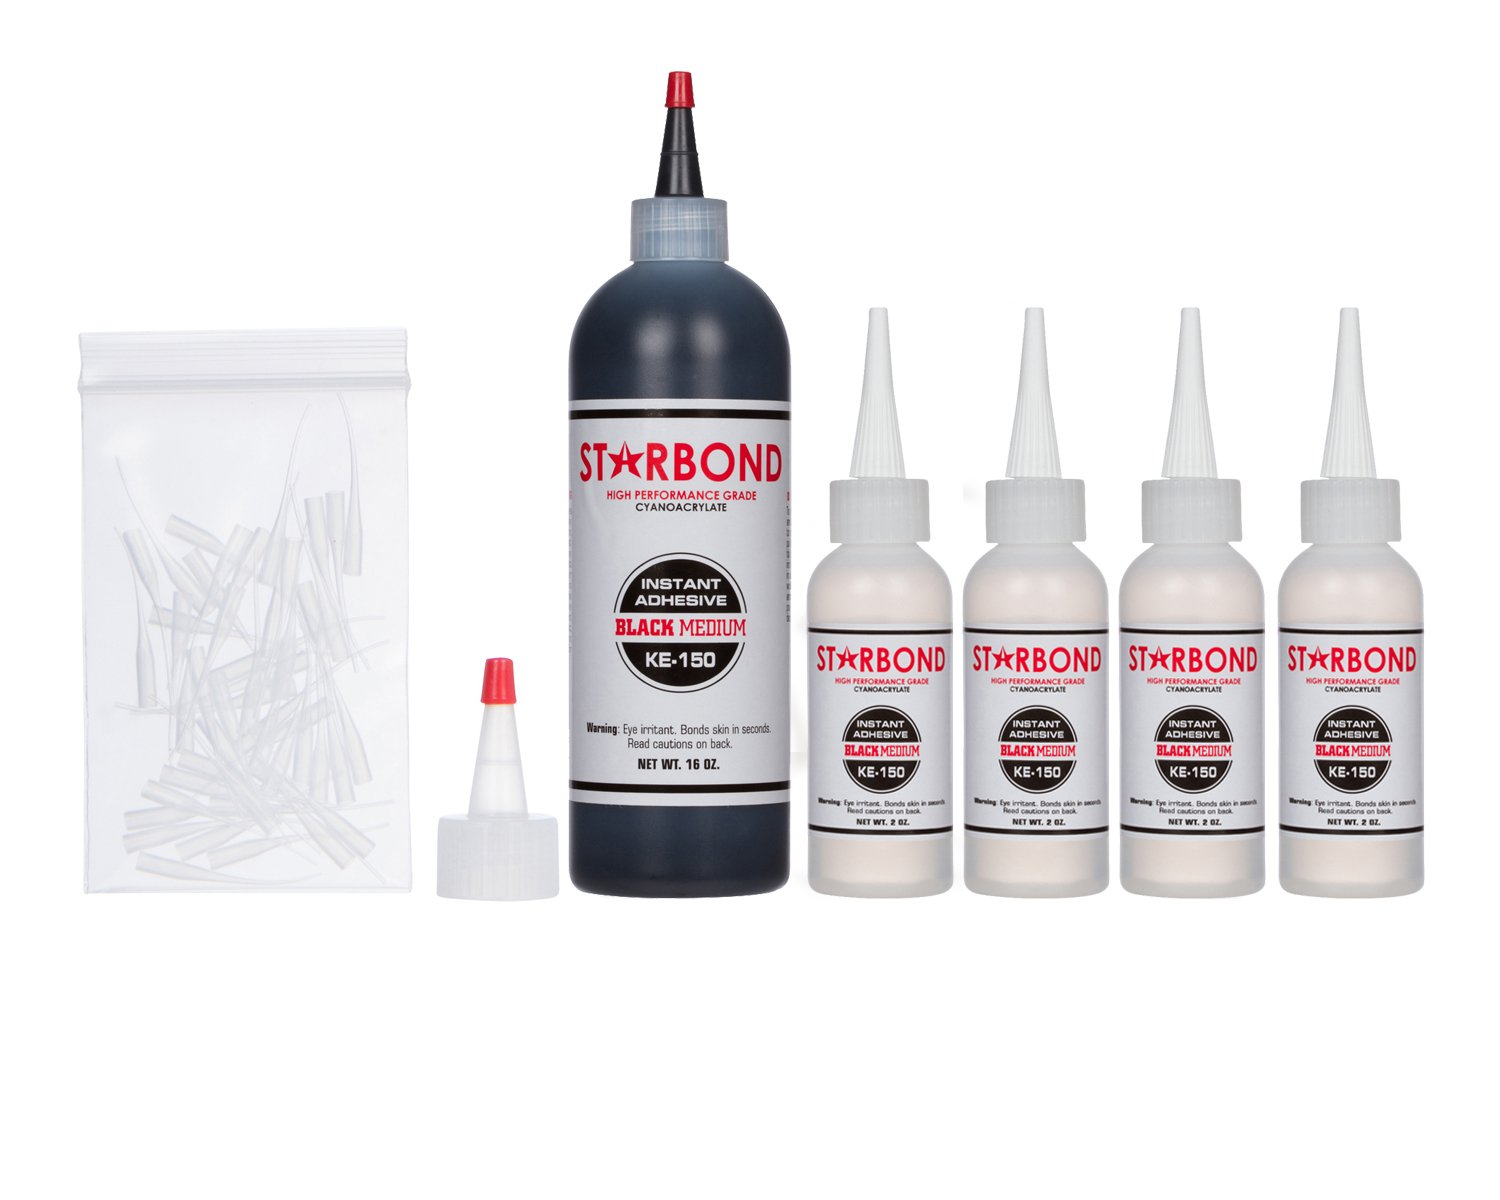 Starbond KE-150 Black Medium, PREMIUM Rubber Toughened CA - Super Glue Kit with Extra Bottles, Caps, and Microtips, 16 oz. (Bulk size)